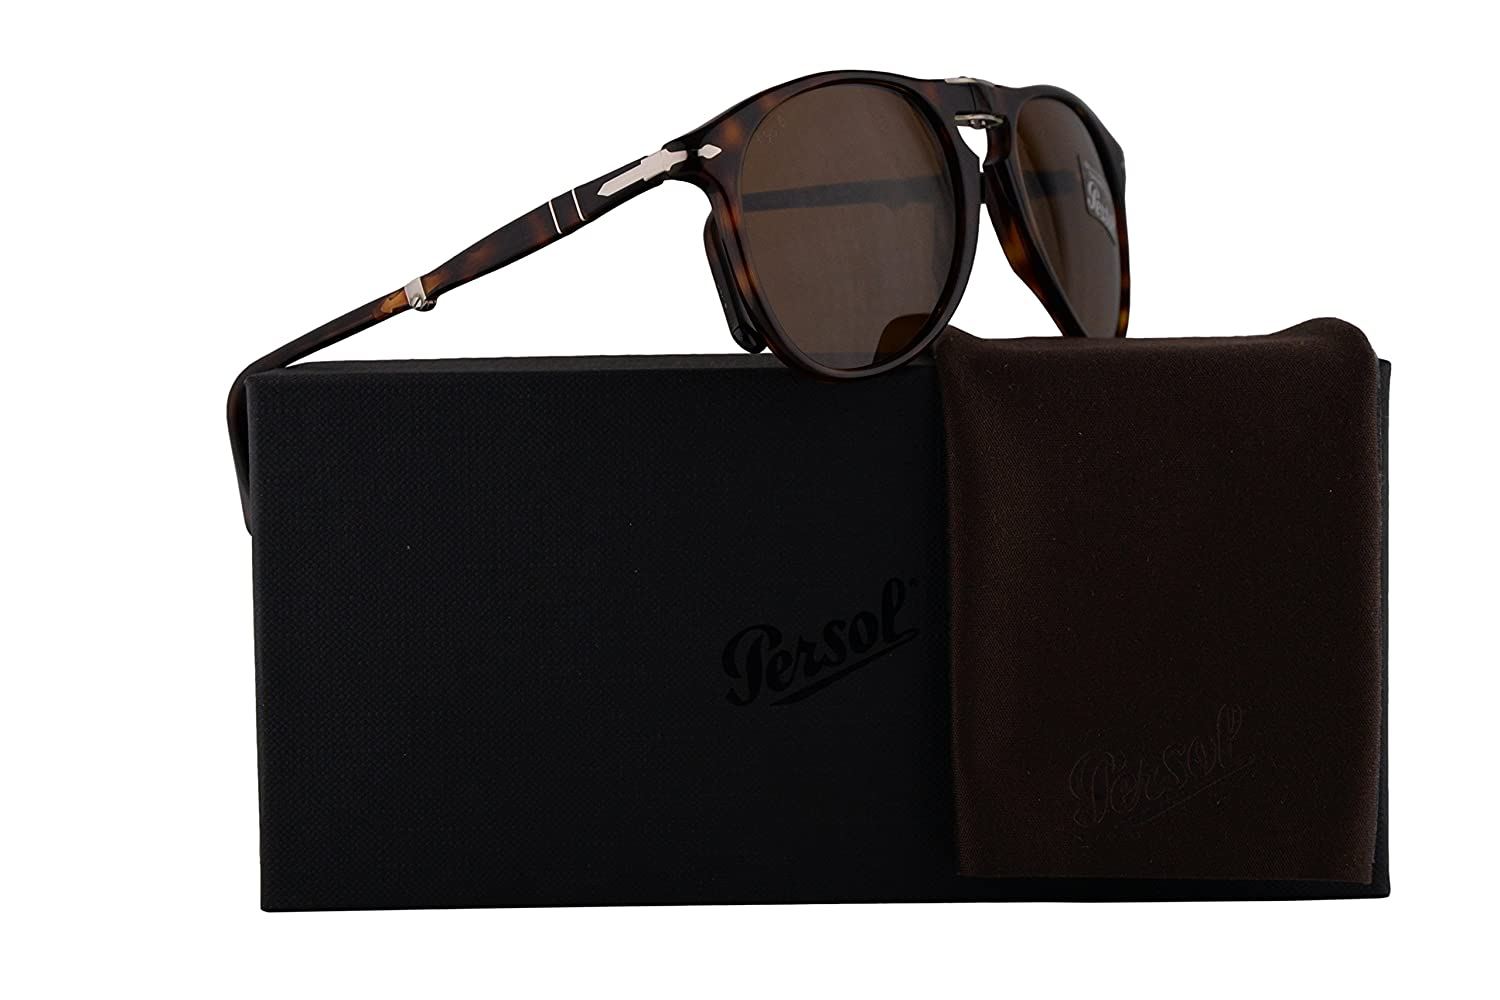 1a64cb4cb12e9 Amazon.com  Persol PO9714S Sunglasses Havana w Brown Lens 52mm 2433 PO9714-S  9714S PO 9714-S  Clothing